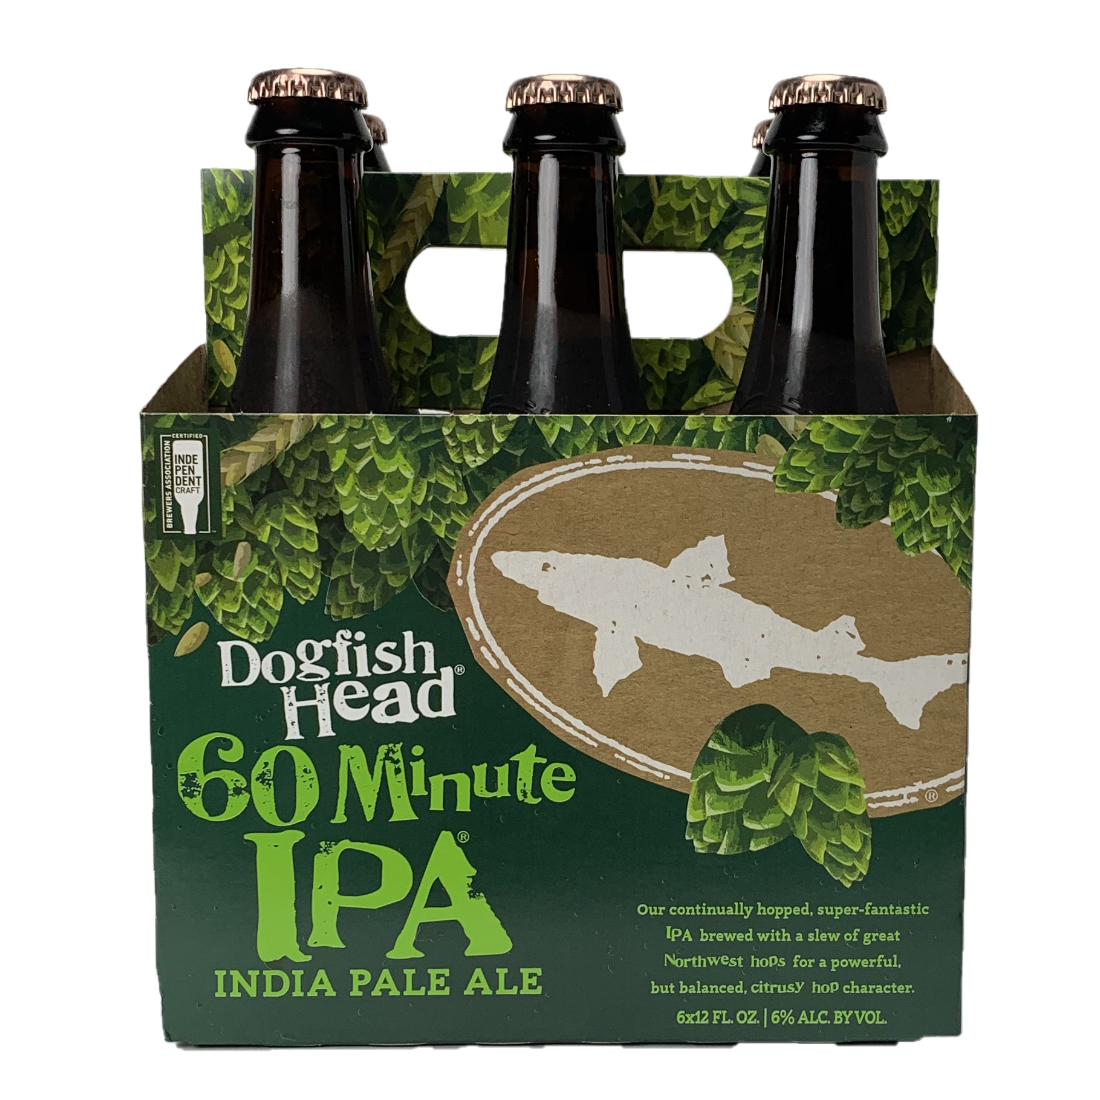 Dogfish Head 60 Minute Ipa 6 Pack Colonial Spirits